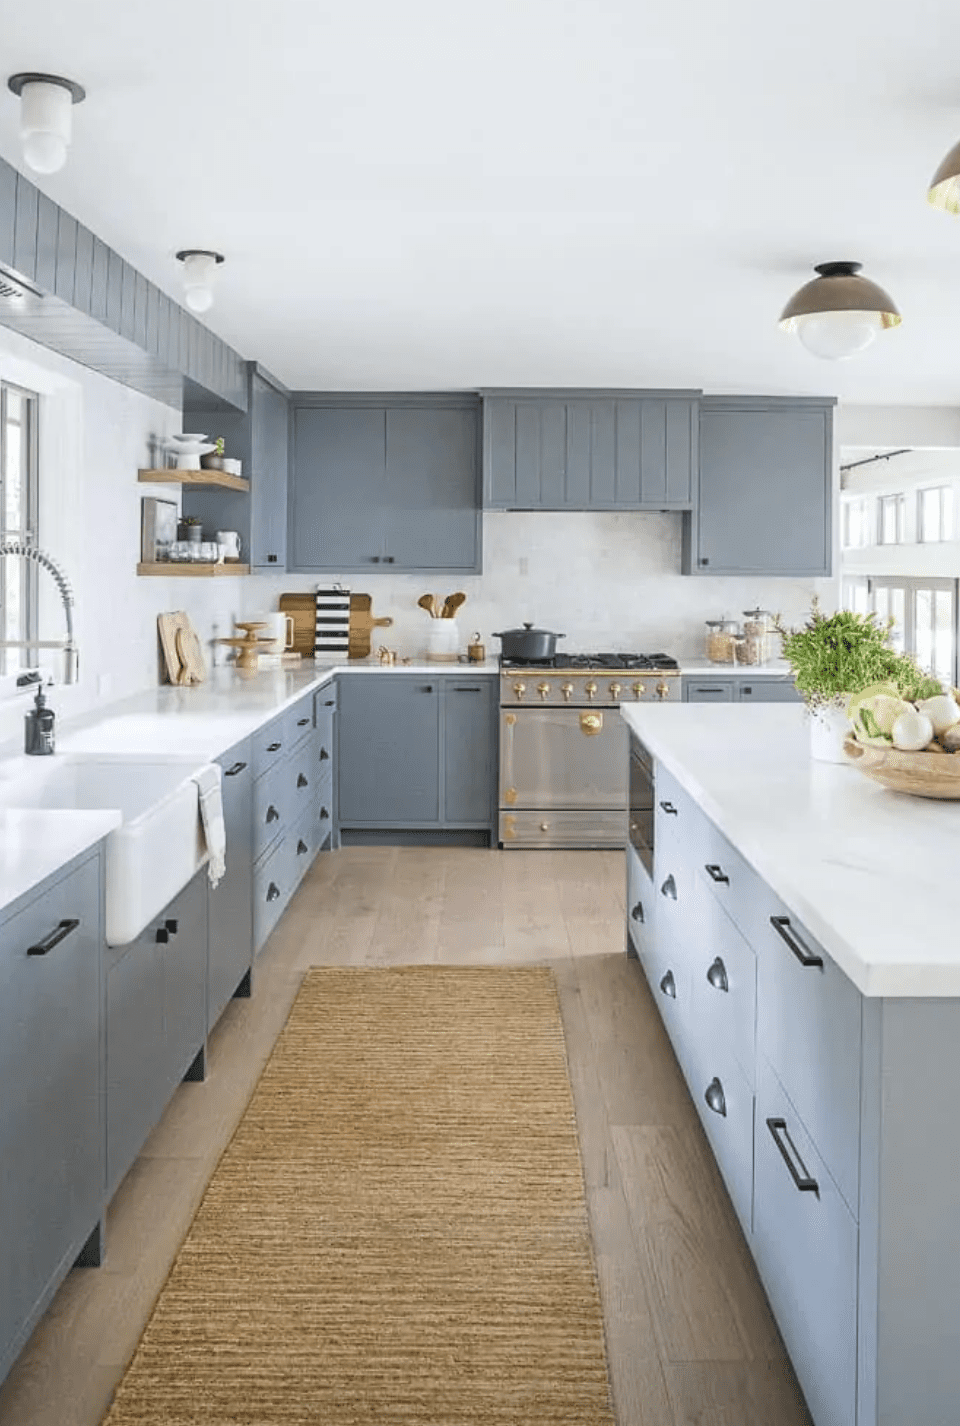 A kitchen with gray cabinets and a jute rug on the floor